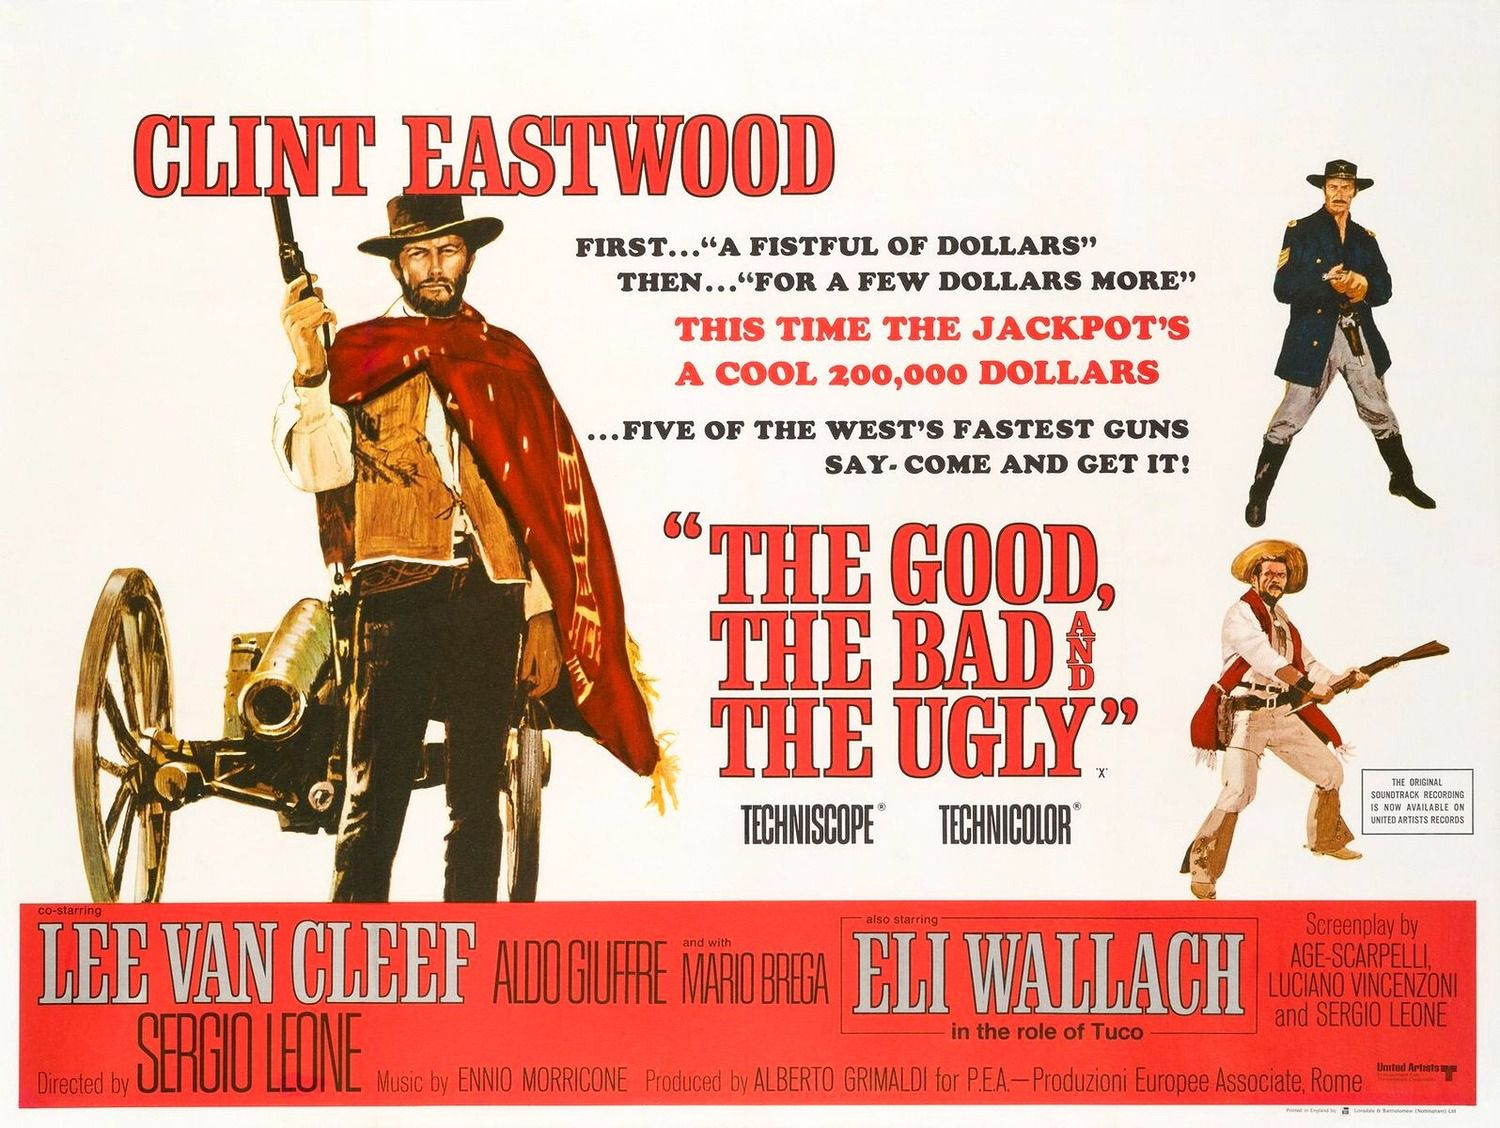 The Good, the Bad, and the Ugly 1966 Eli Wallach, Clint Eastwood, Lee Van Cleef, Aldo Giuffre - poster